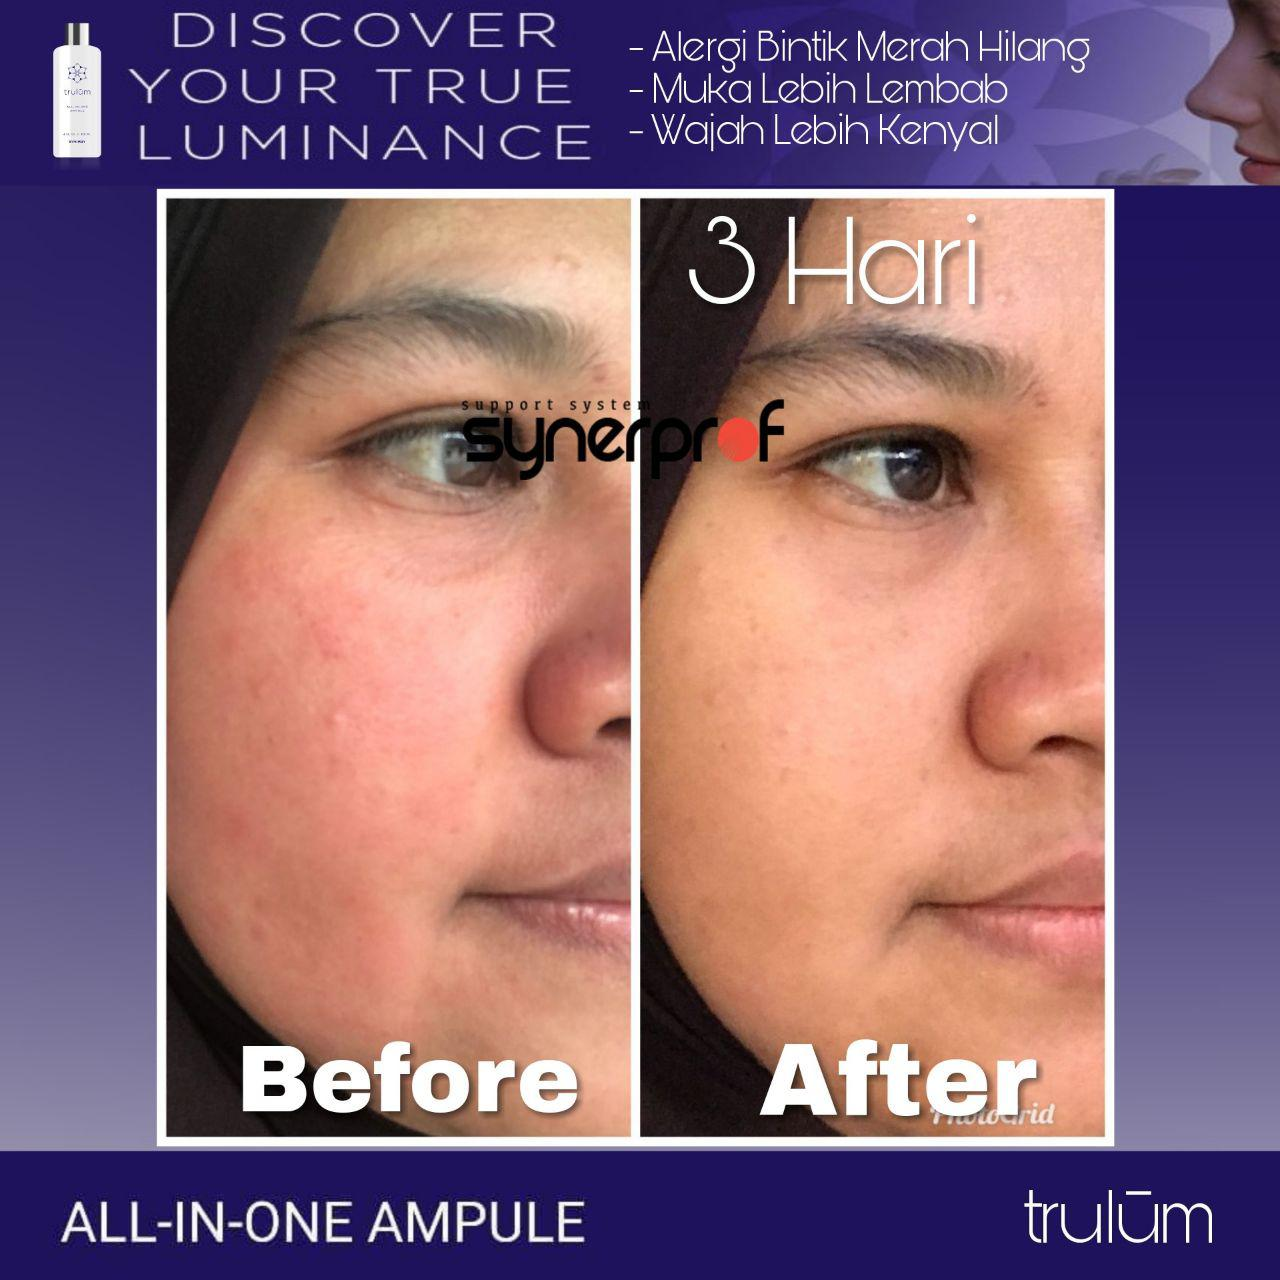 Jual Trulum All In One Ampoule Di Mendahara Ulu WA: 08112338376